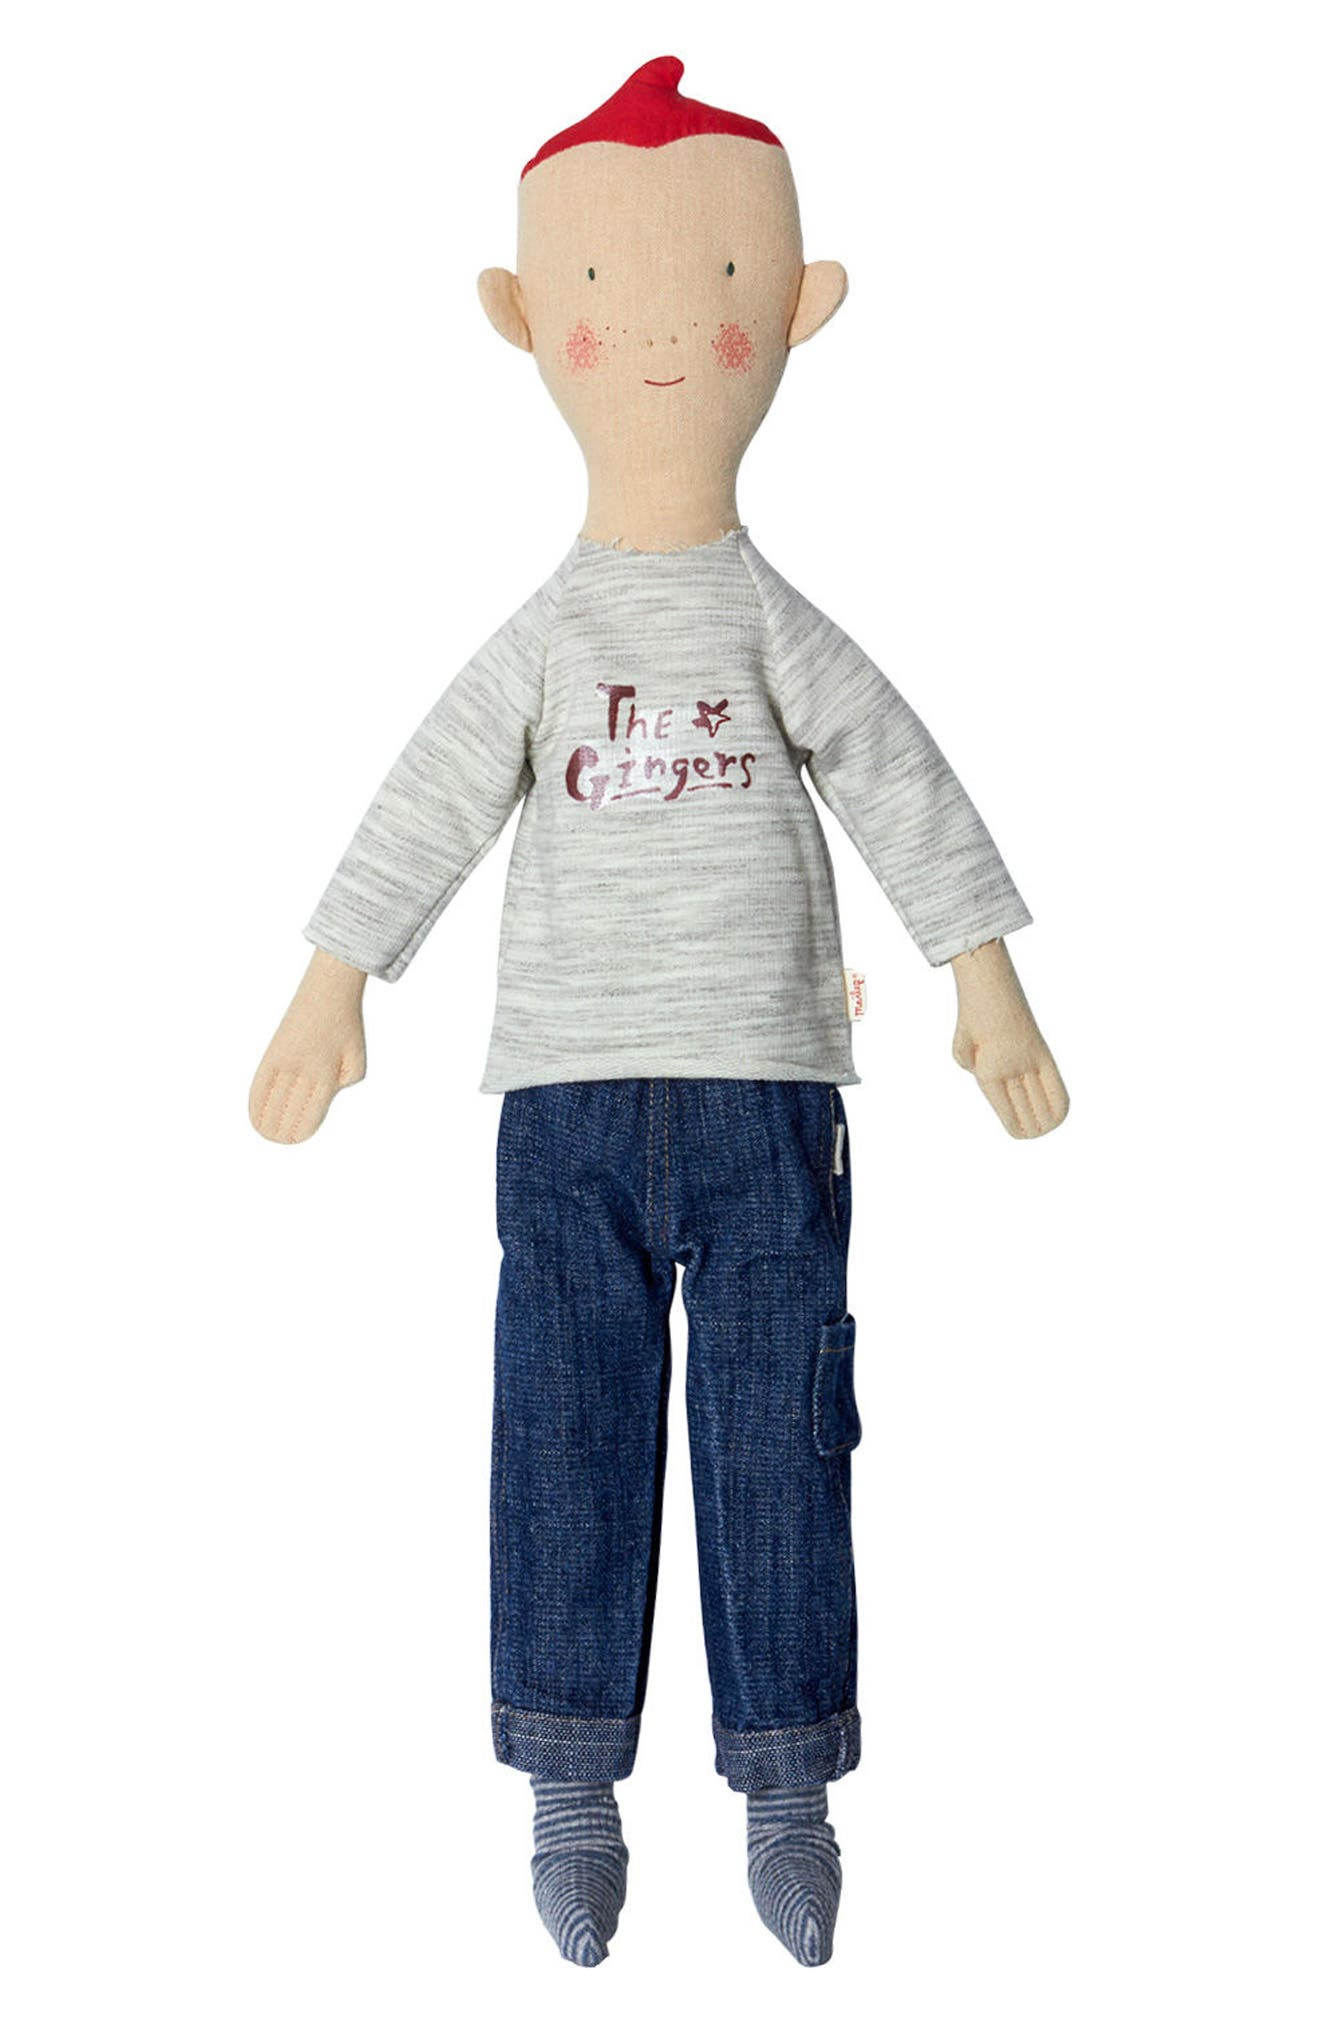 Alternate Image 1 Selected - Maileg Size 2 Ginger Brother Doll